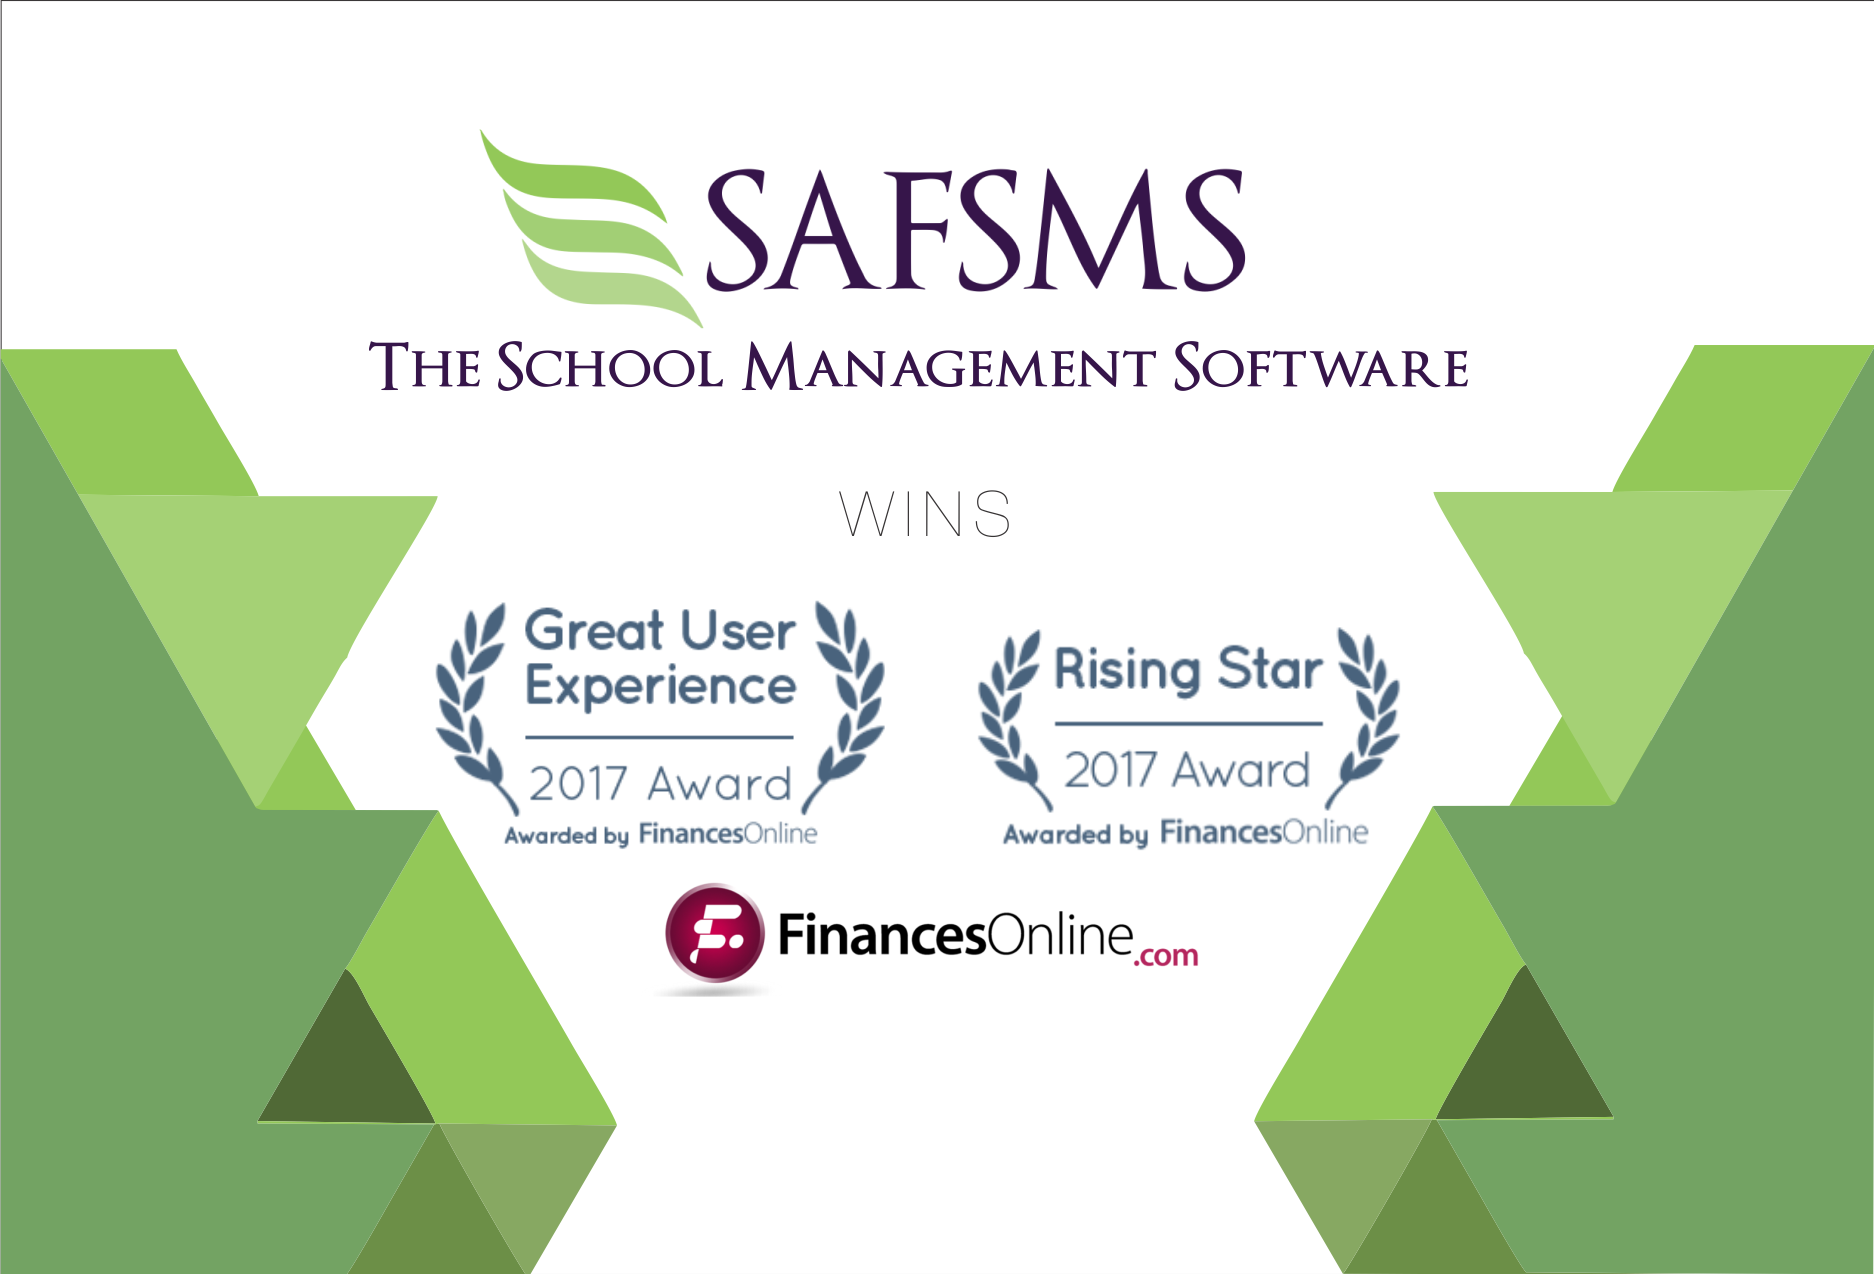 FinancesOnline grants 2 Awards to SAFSMS